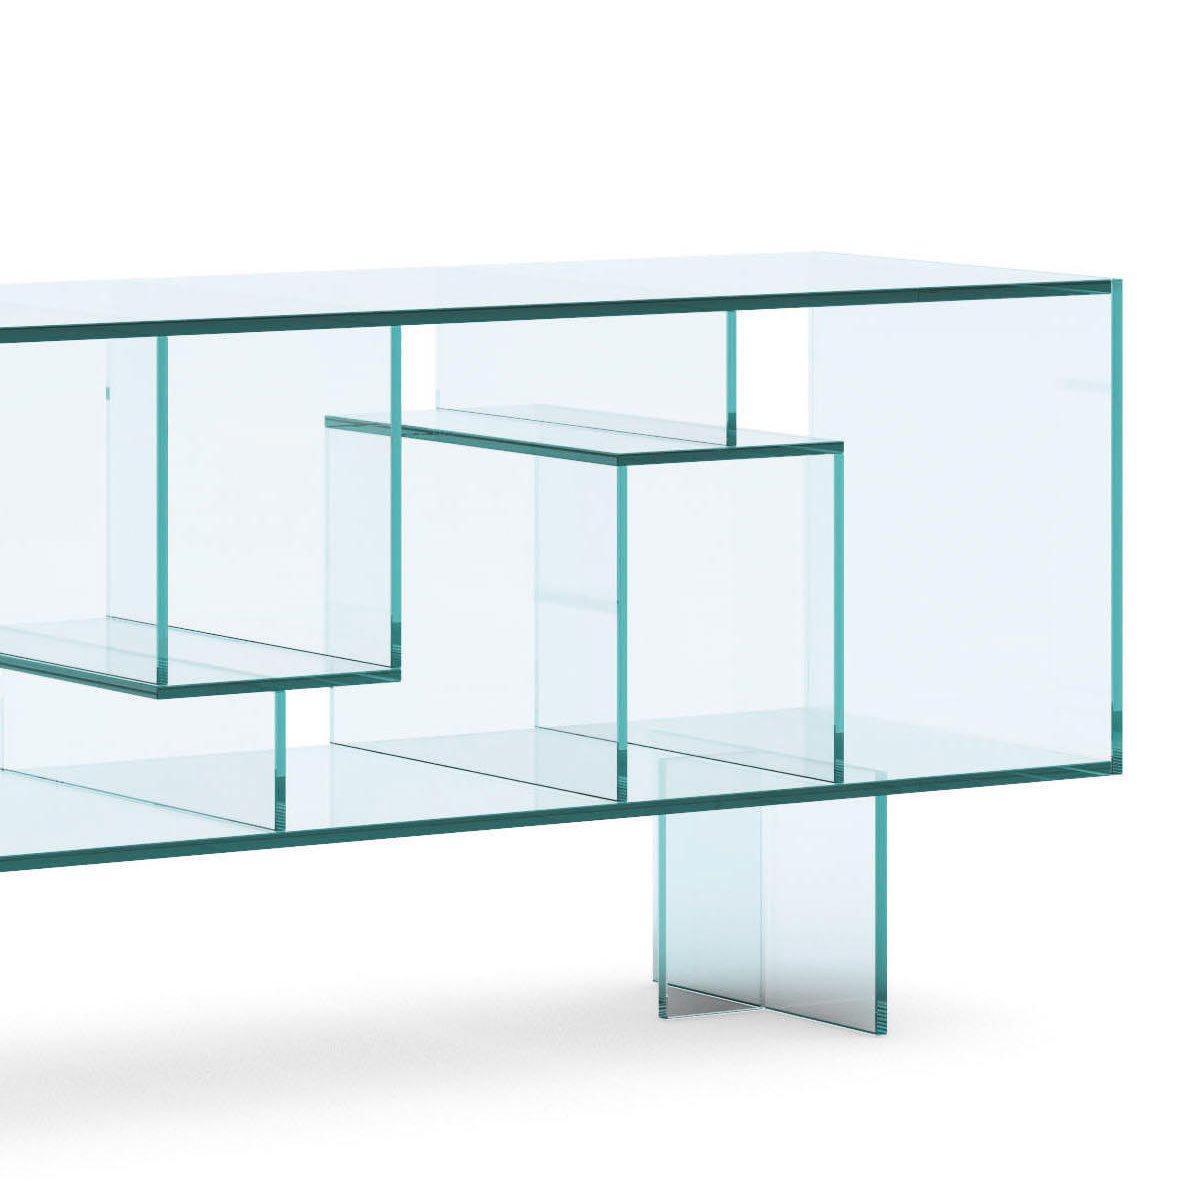 Tonelli liber m glass sideboard klarity glass furniture for Sideboard glas